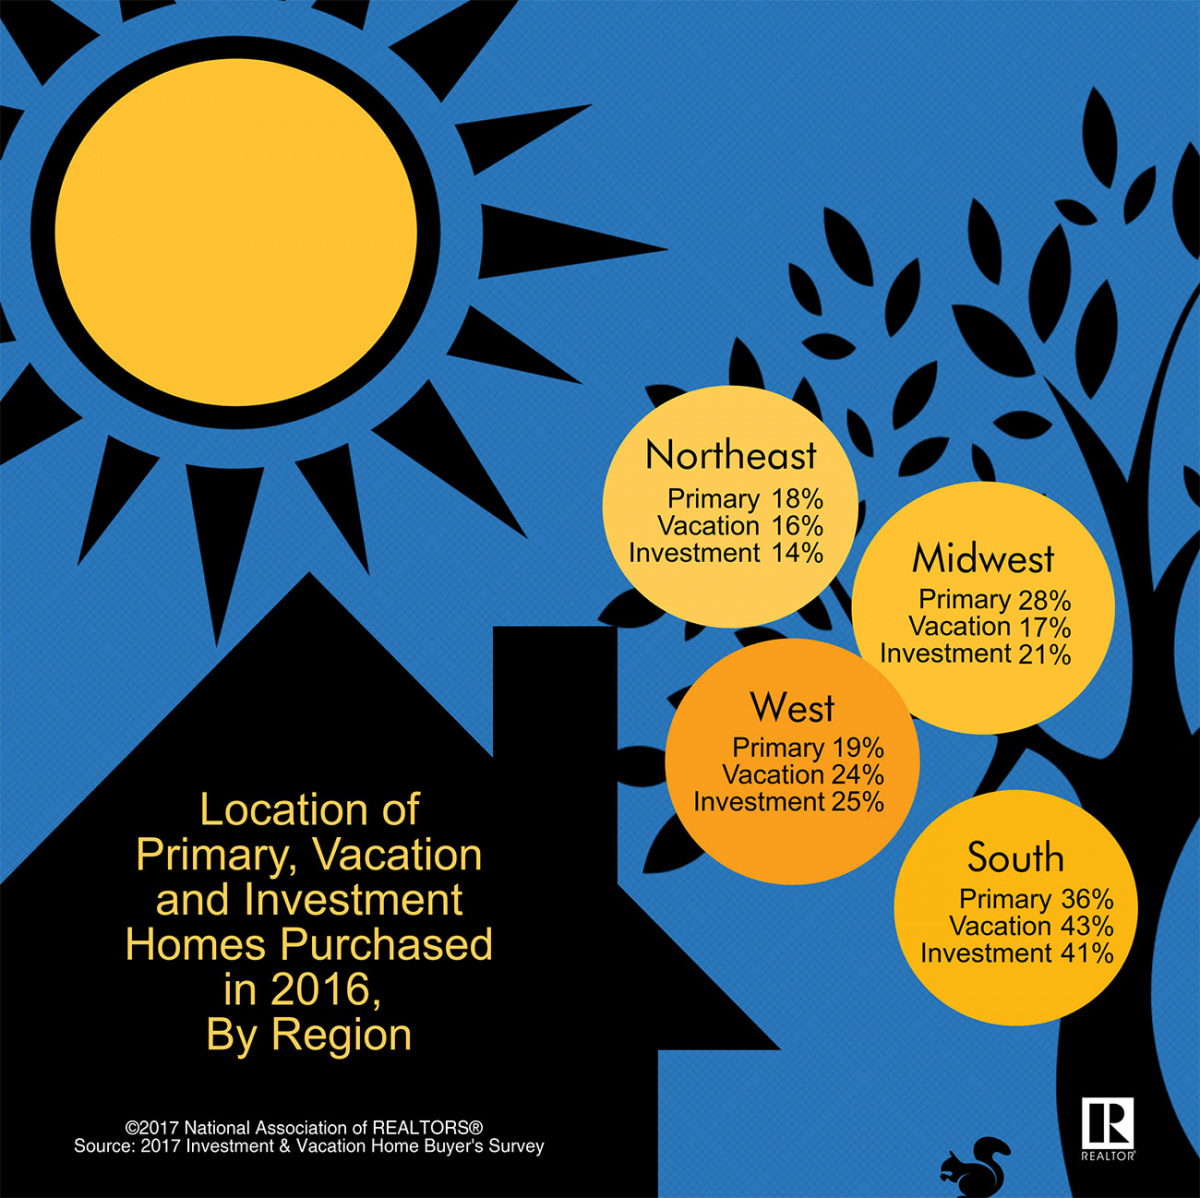 Location of Primary Vacation & Investments Homes